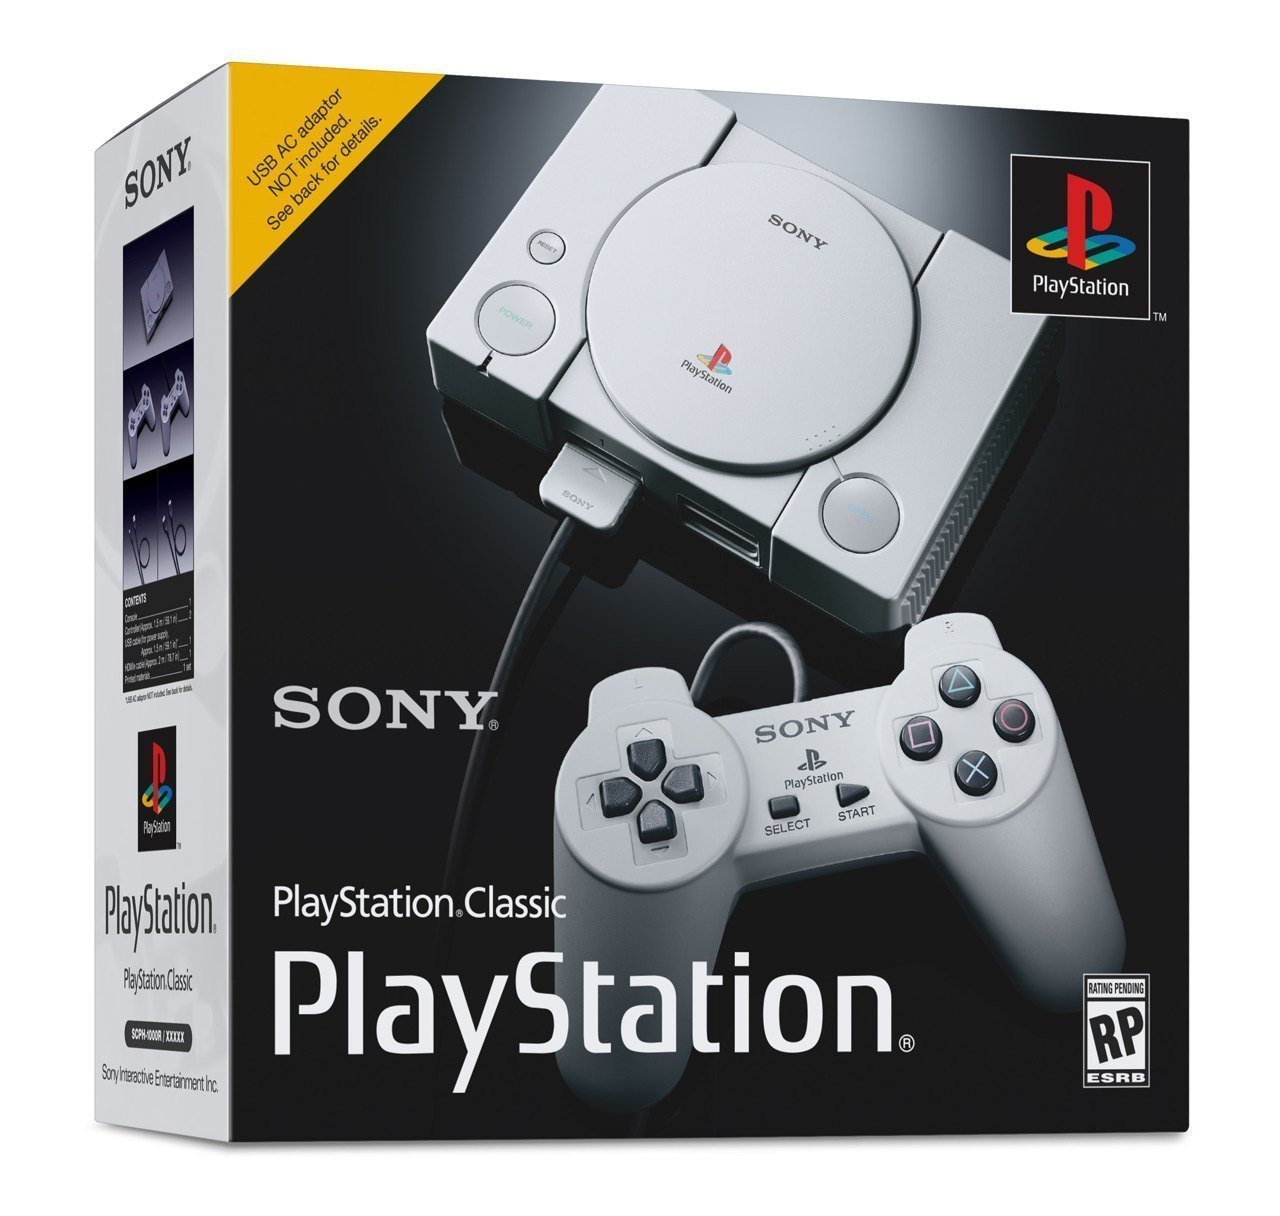 Sony's $100 PlayStation Classic will launch this December